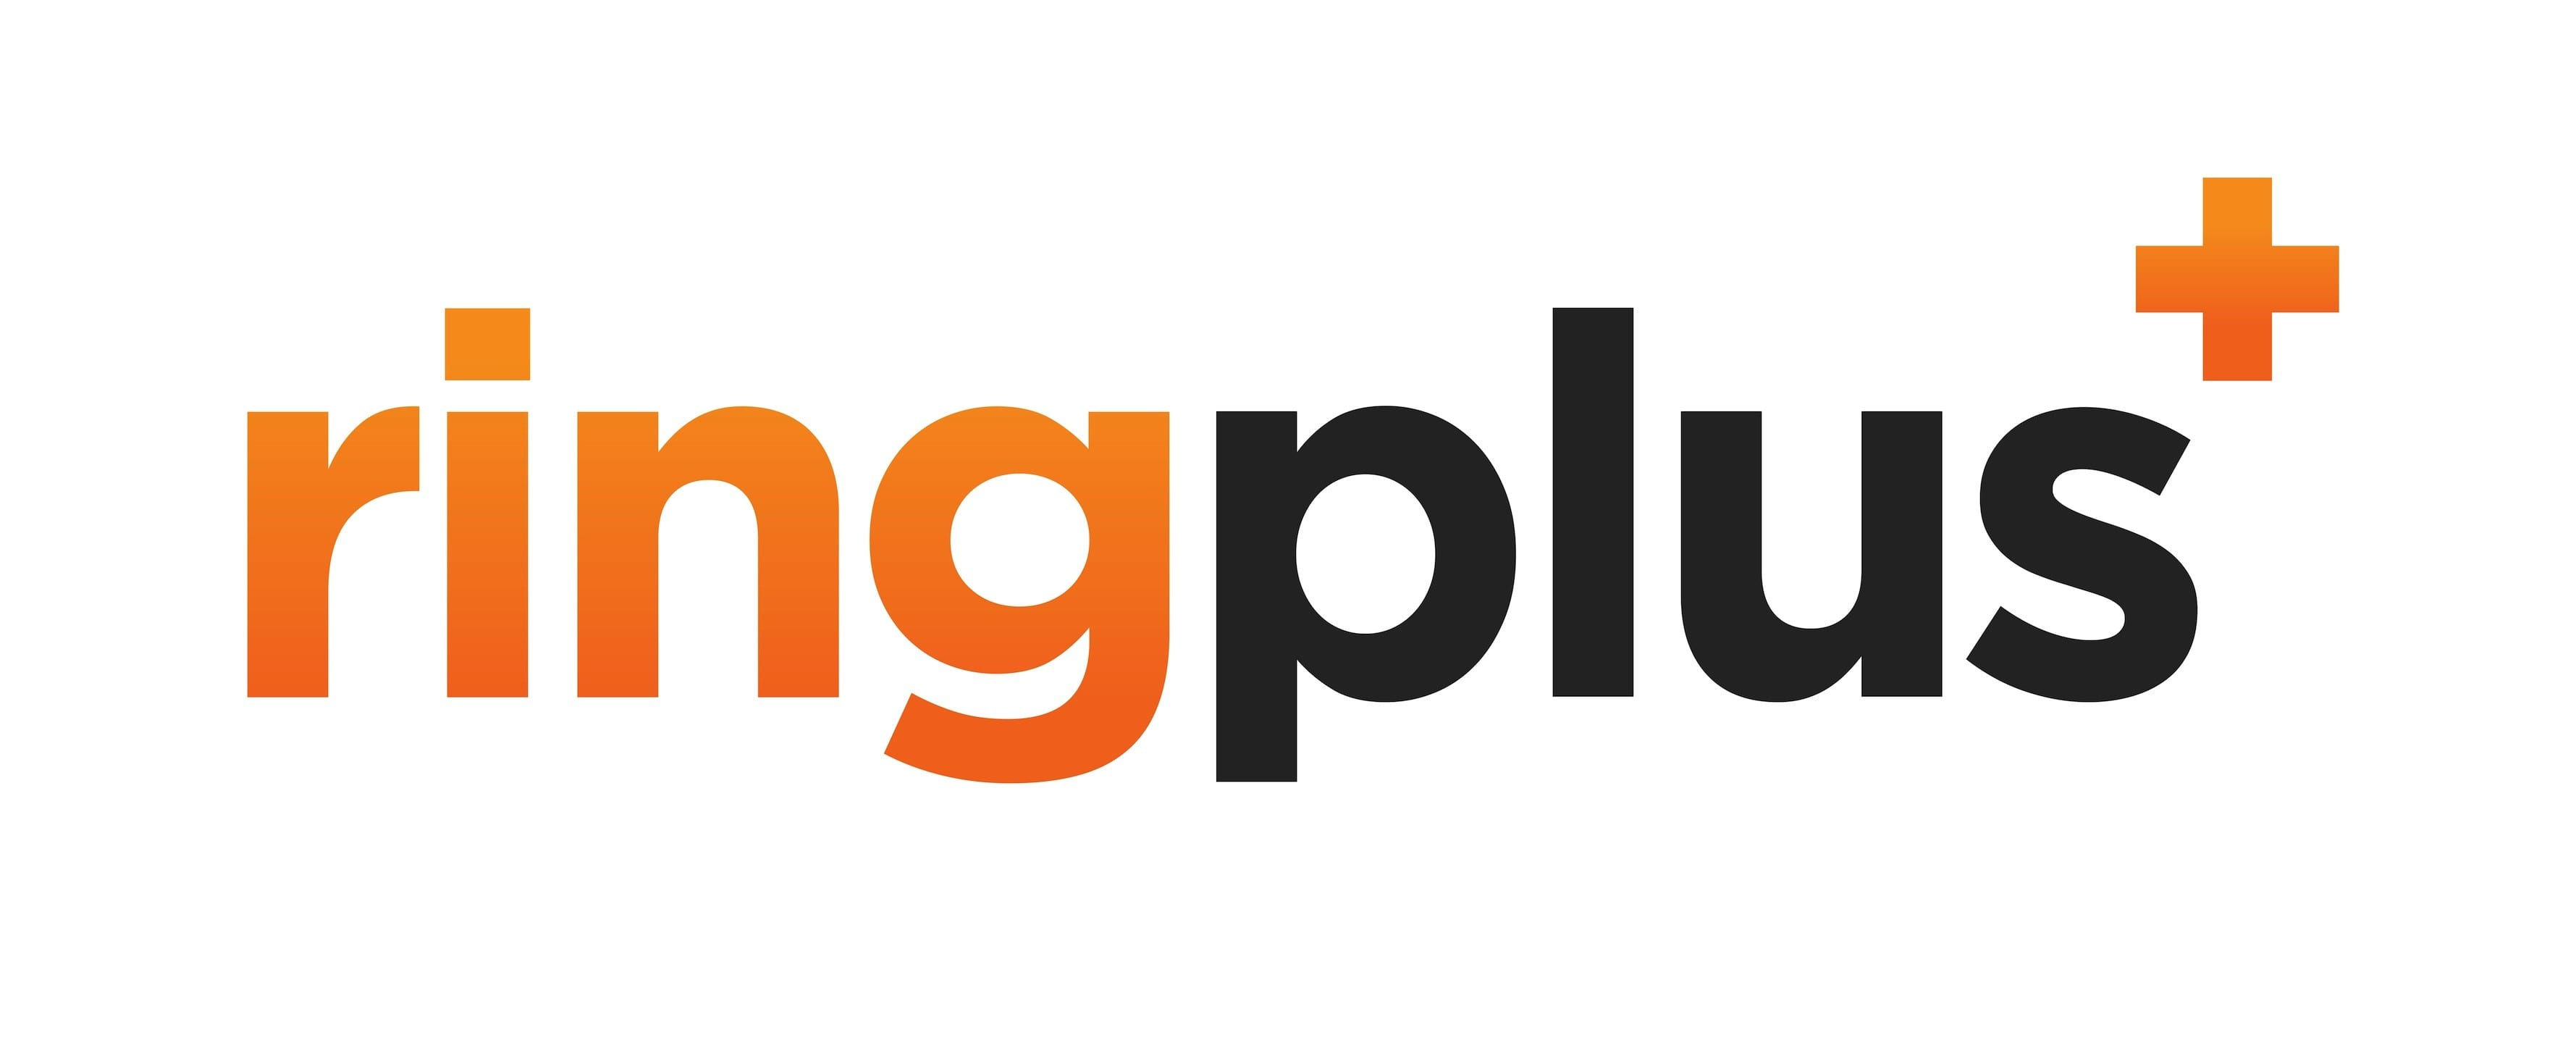 RingPlus Mobile BLT Plan: 6,000/6,000/6,000/6,000 Minutes/Texts/MMS/MB LTE Data w/$38 one-time Top-Up; Allotments start at 4750 and goes to 6000 within 5 months; UPGRADES available